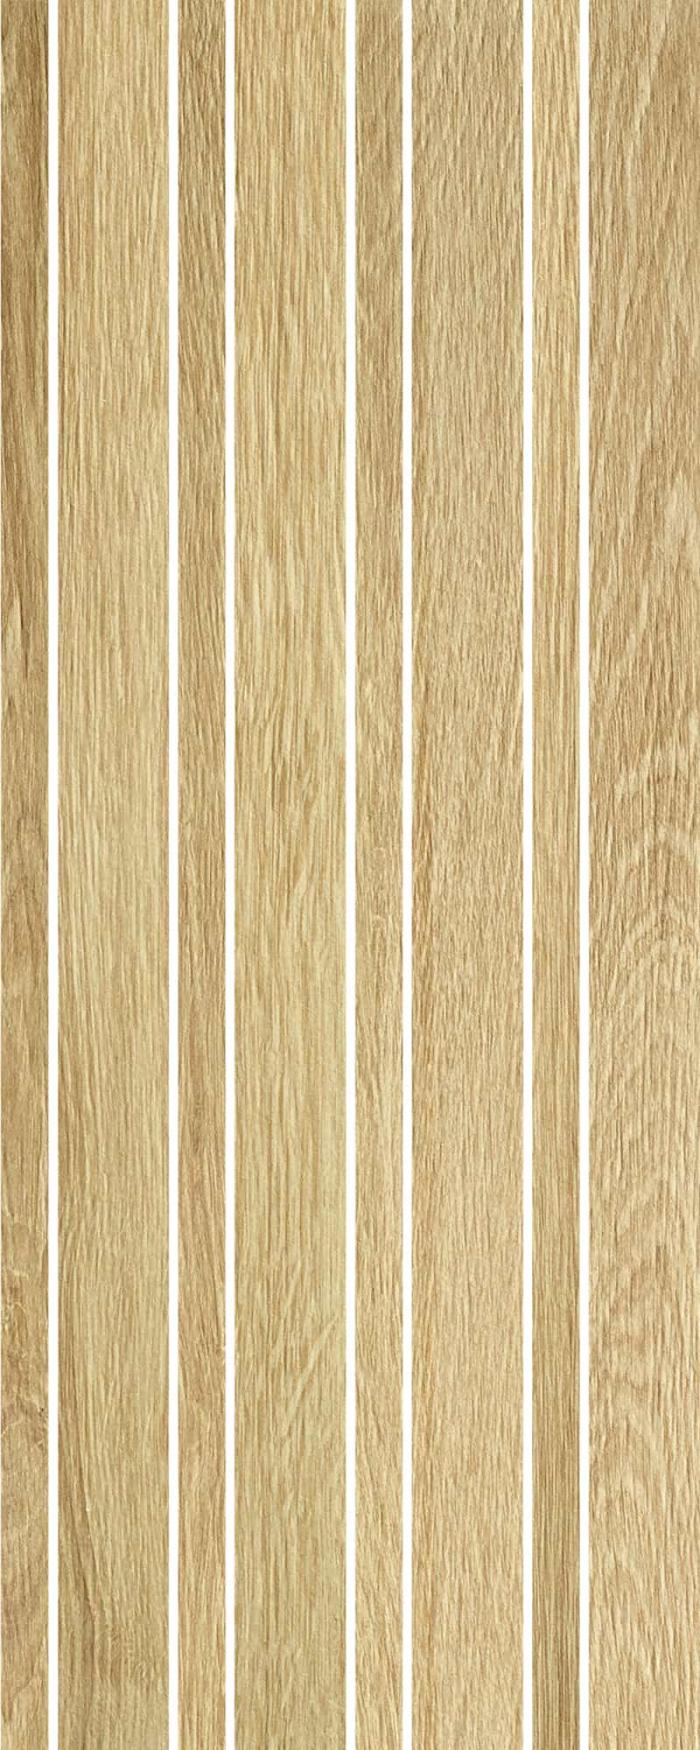 Mosaic Timber Raw Light Beige AS